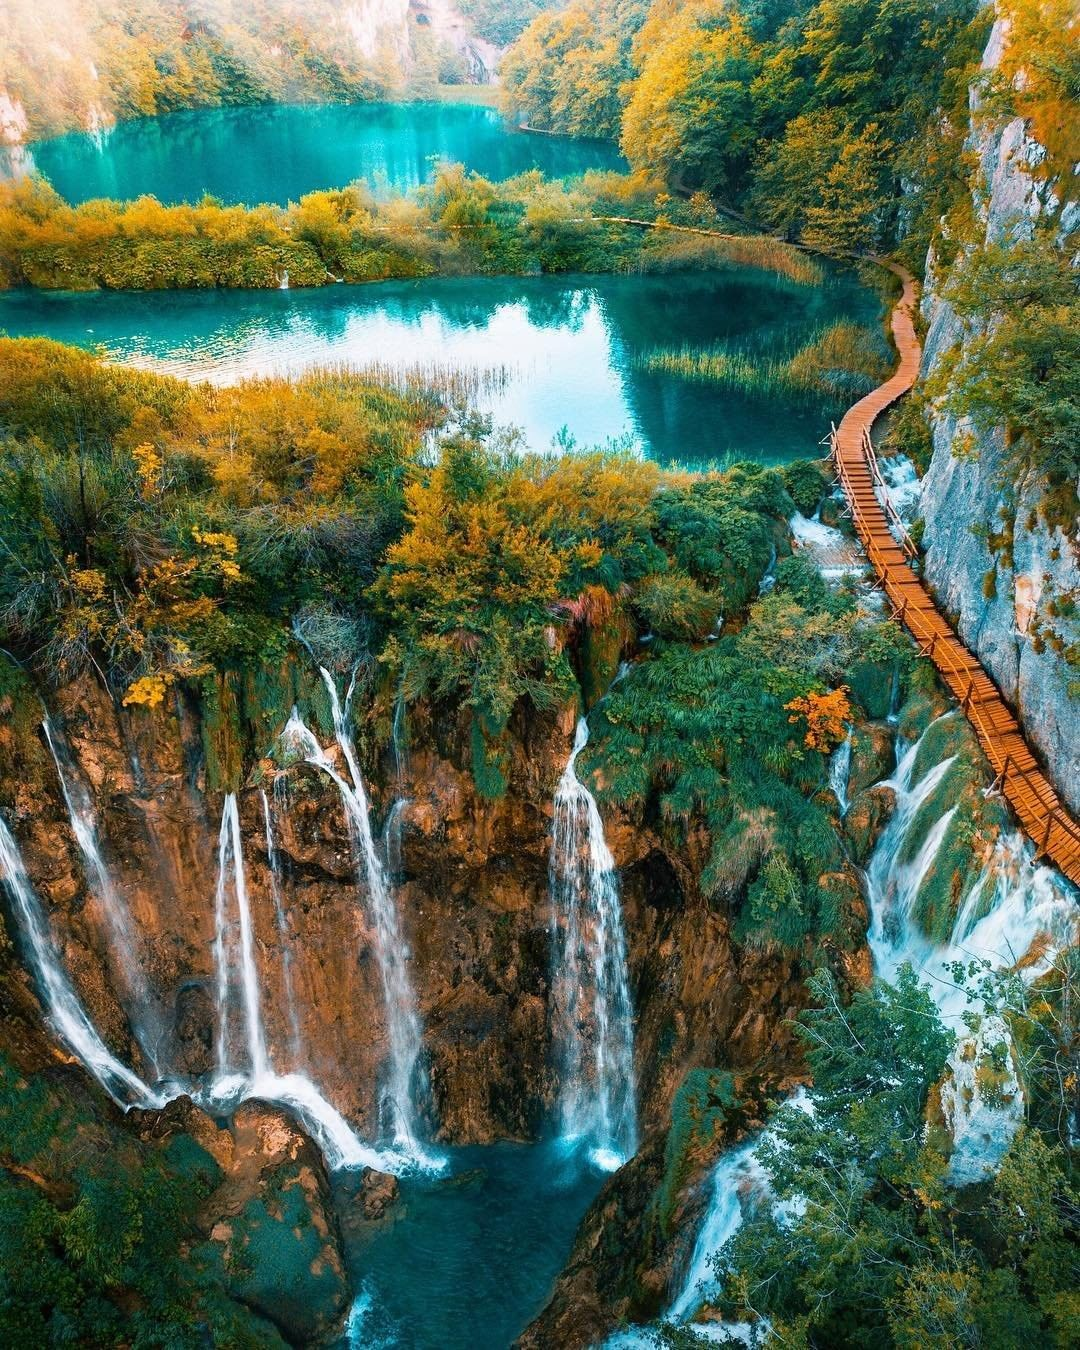 Plitvice, Croatia - Monterrasol small group tours to Plitvice, Croatia. Travel agency offers small group car tours to see Plitvice in Croatia. Order small group tour to Plitvice with departure date on request.